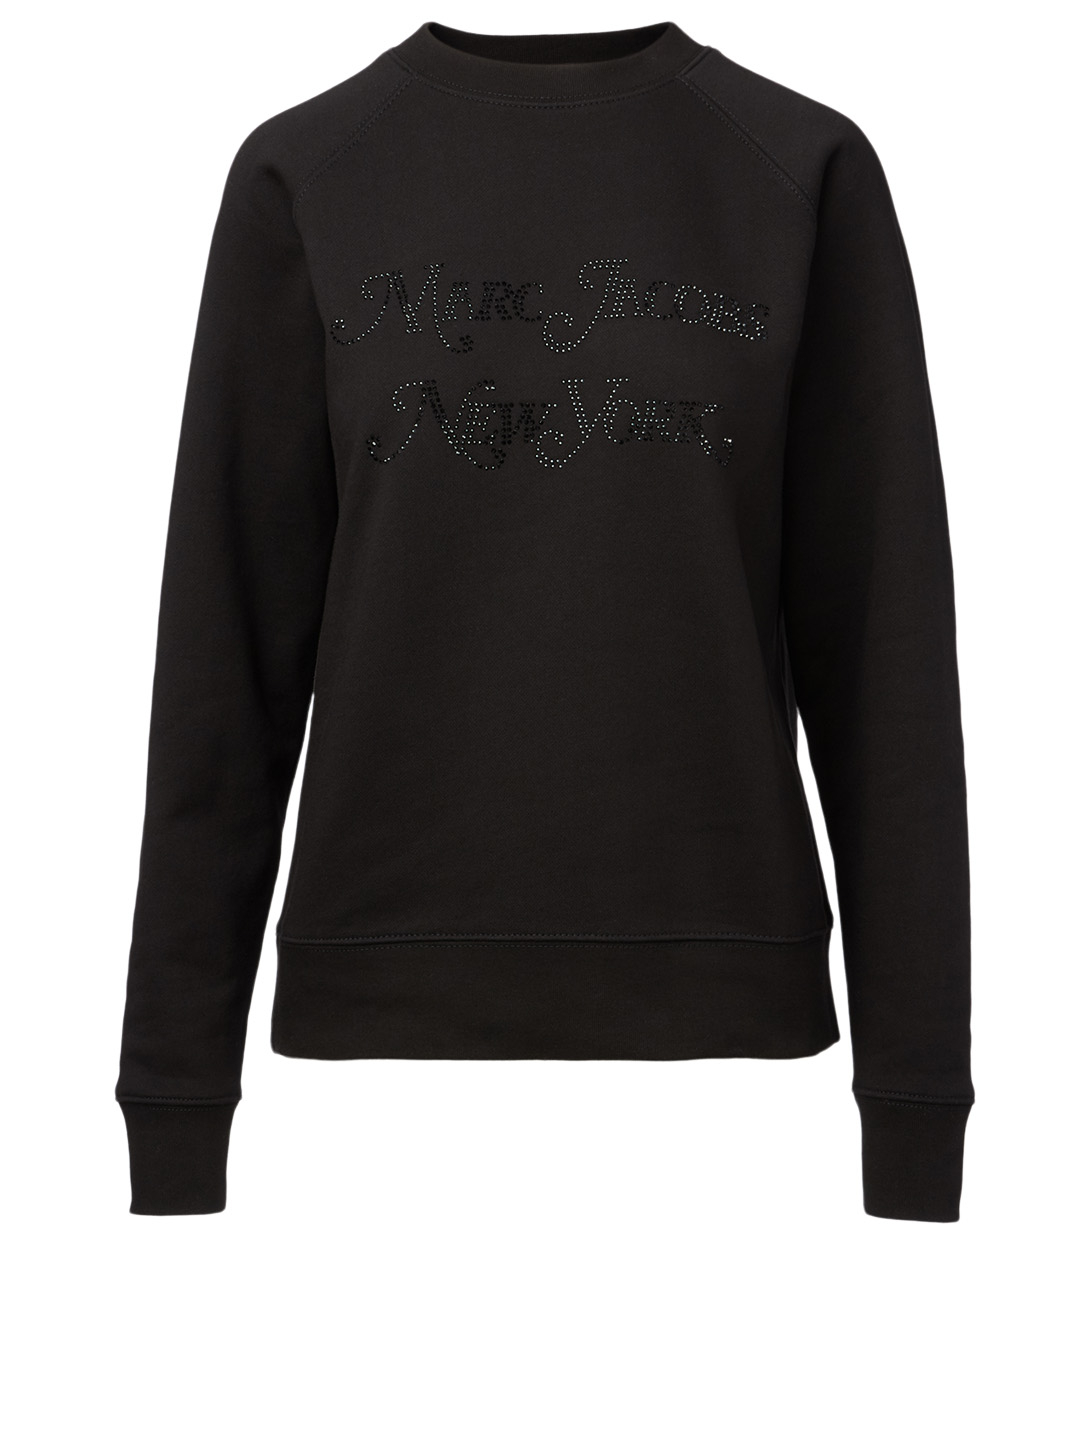 THE MARC JACOBS New York Magazine Logo Sweatshirt Women's Black